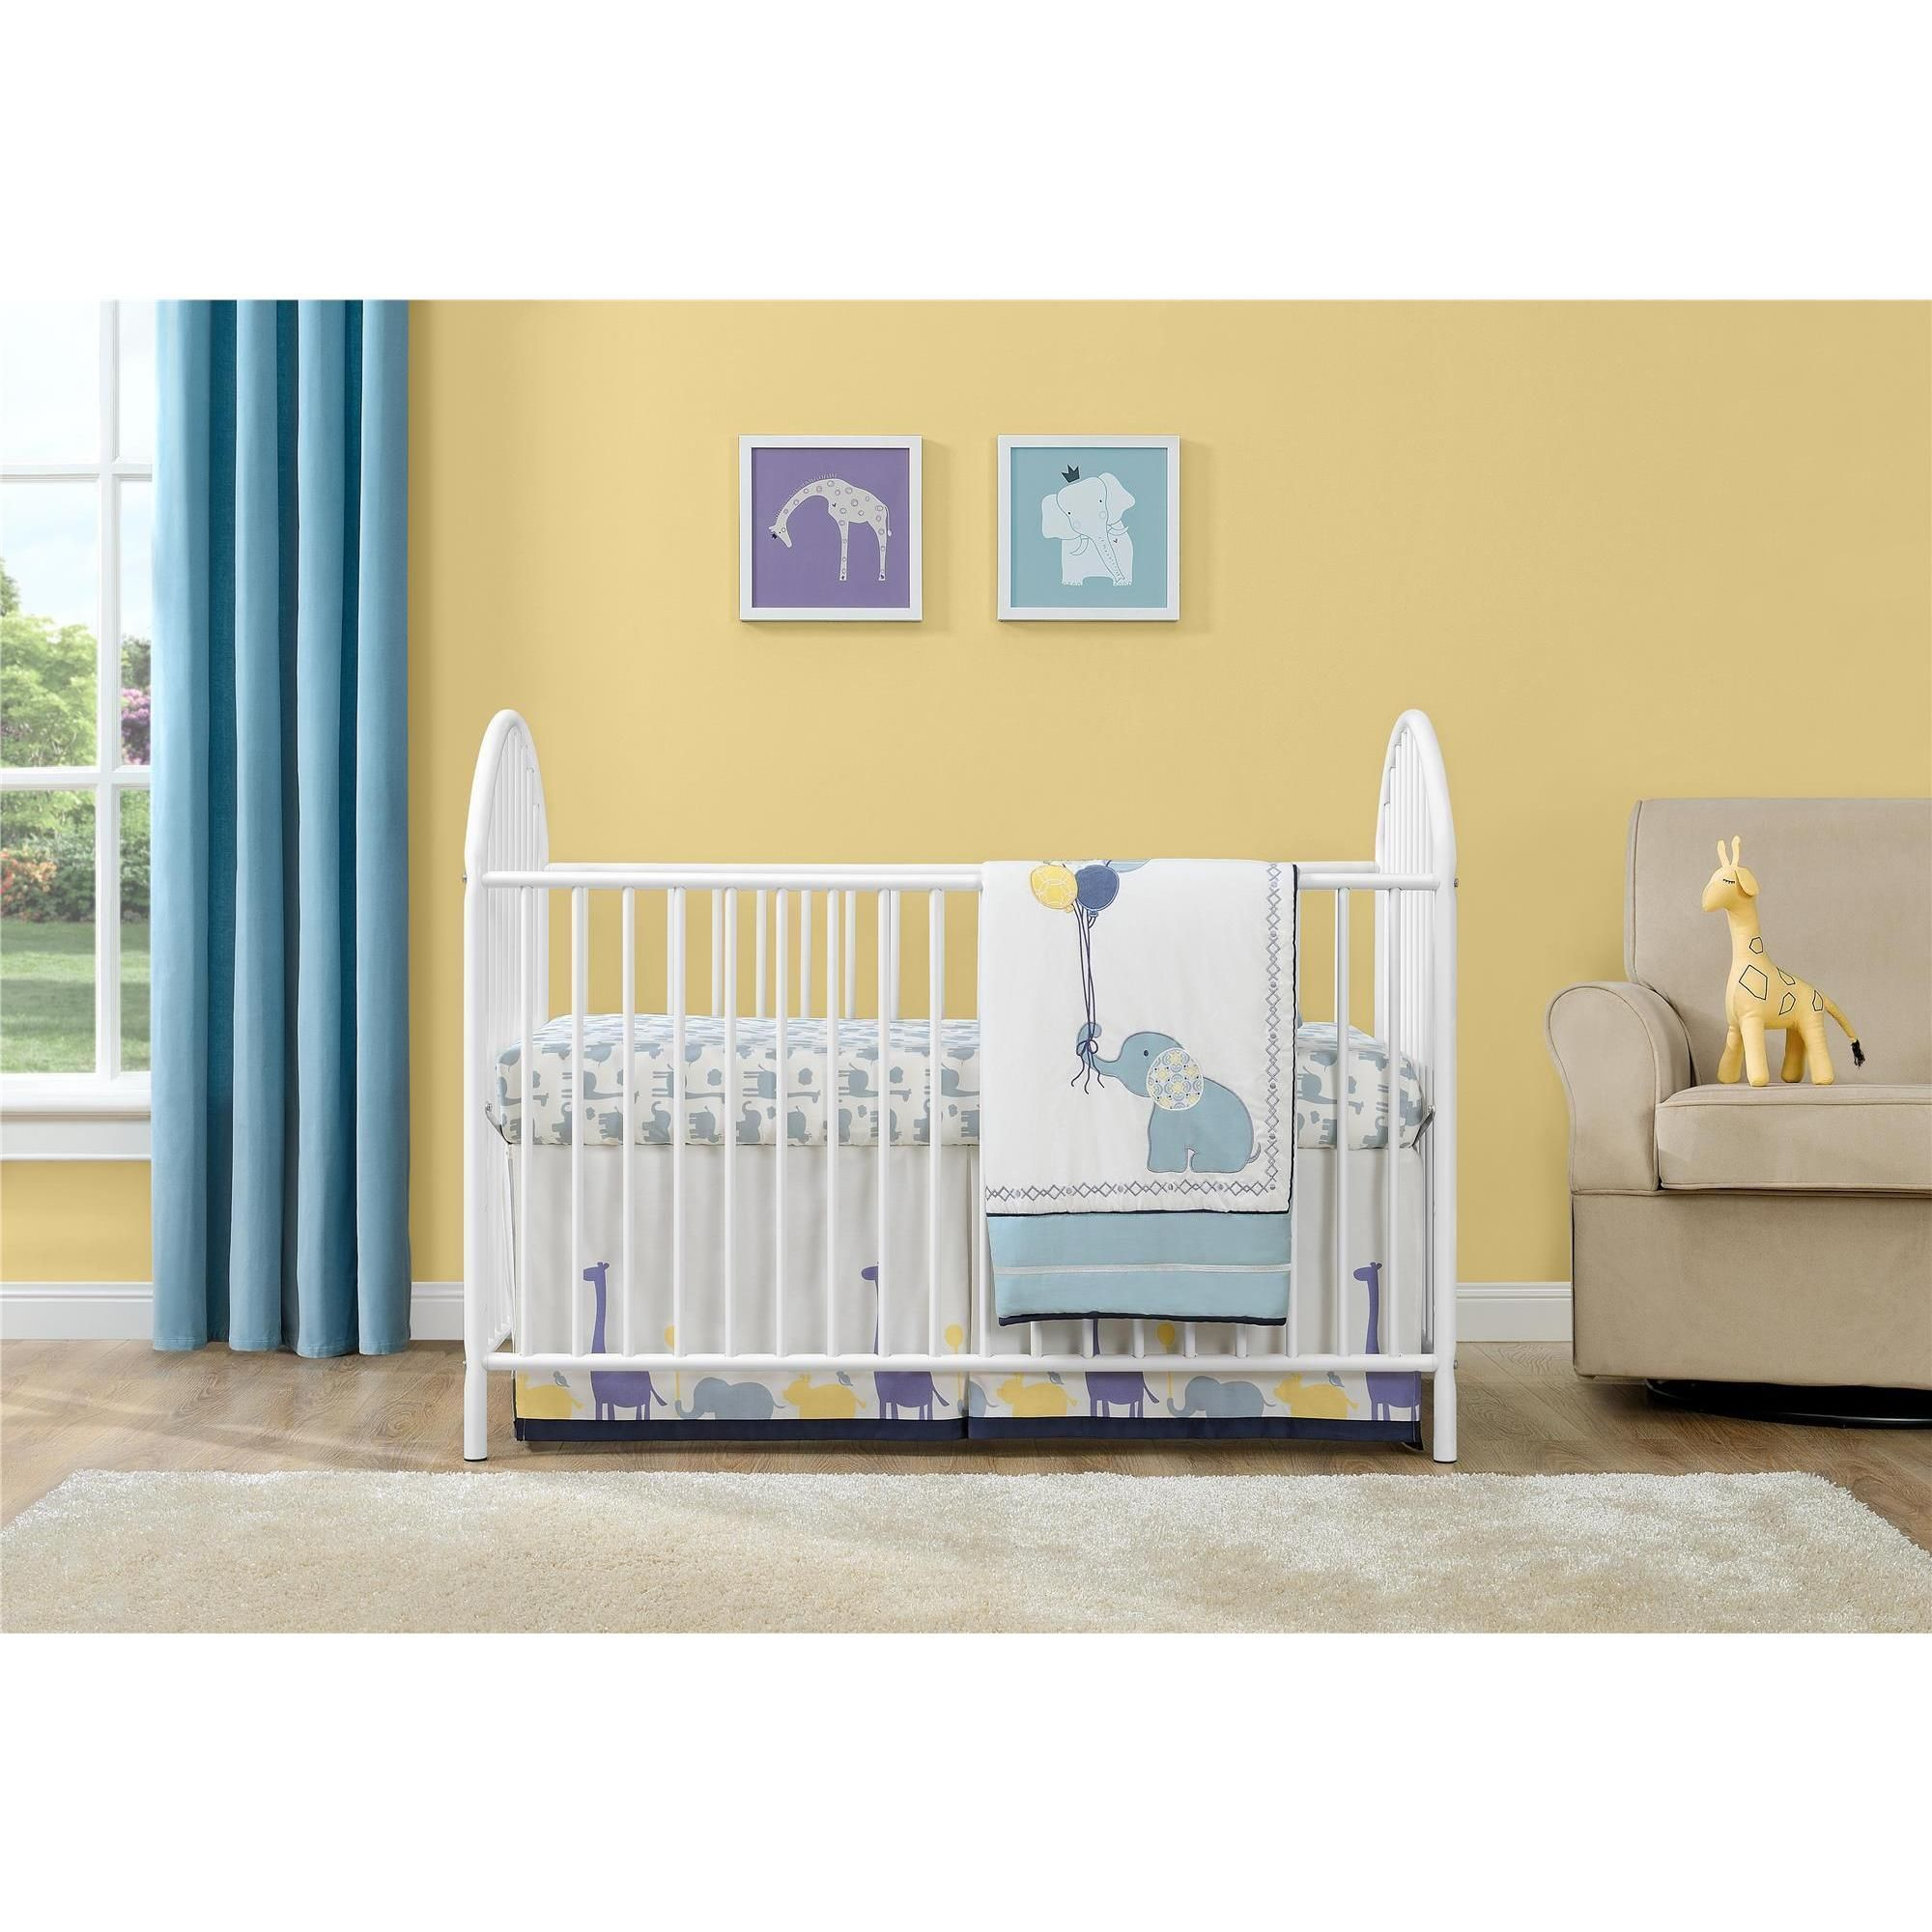 Ameriwood Home Adjustable White Metal Crib by Cosco (Metal Crib ...